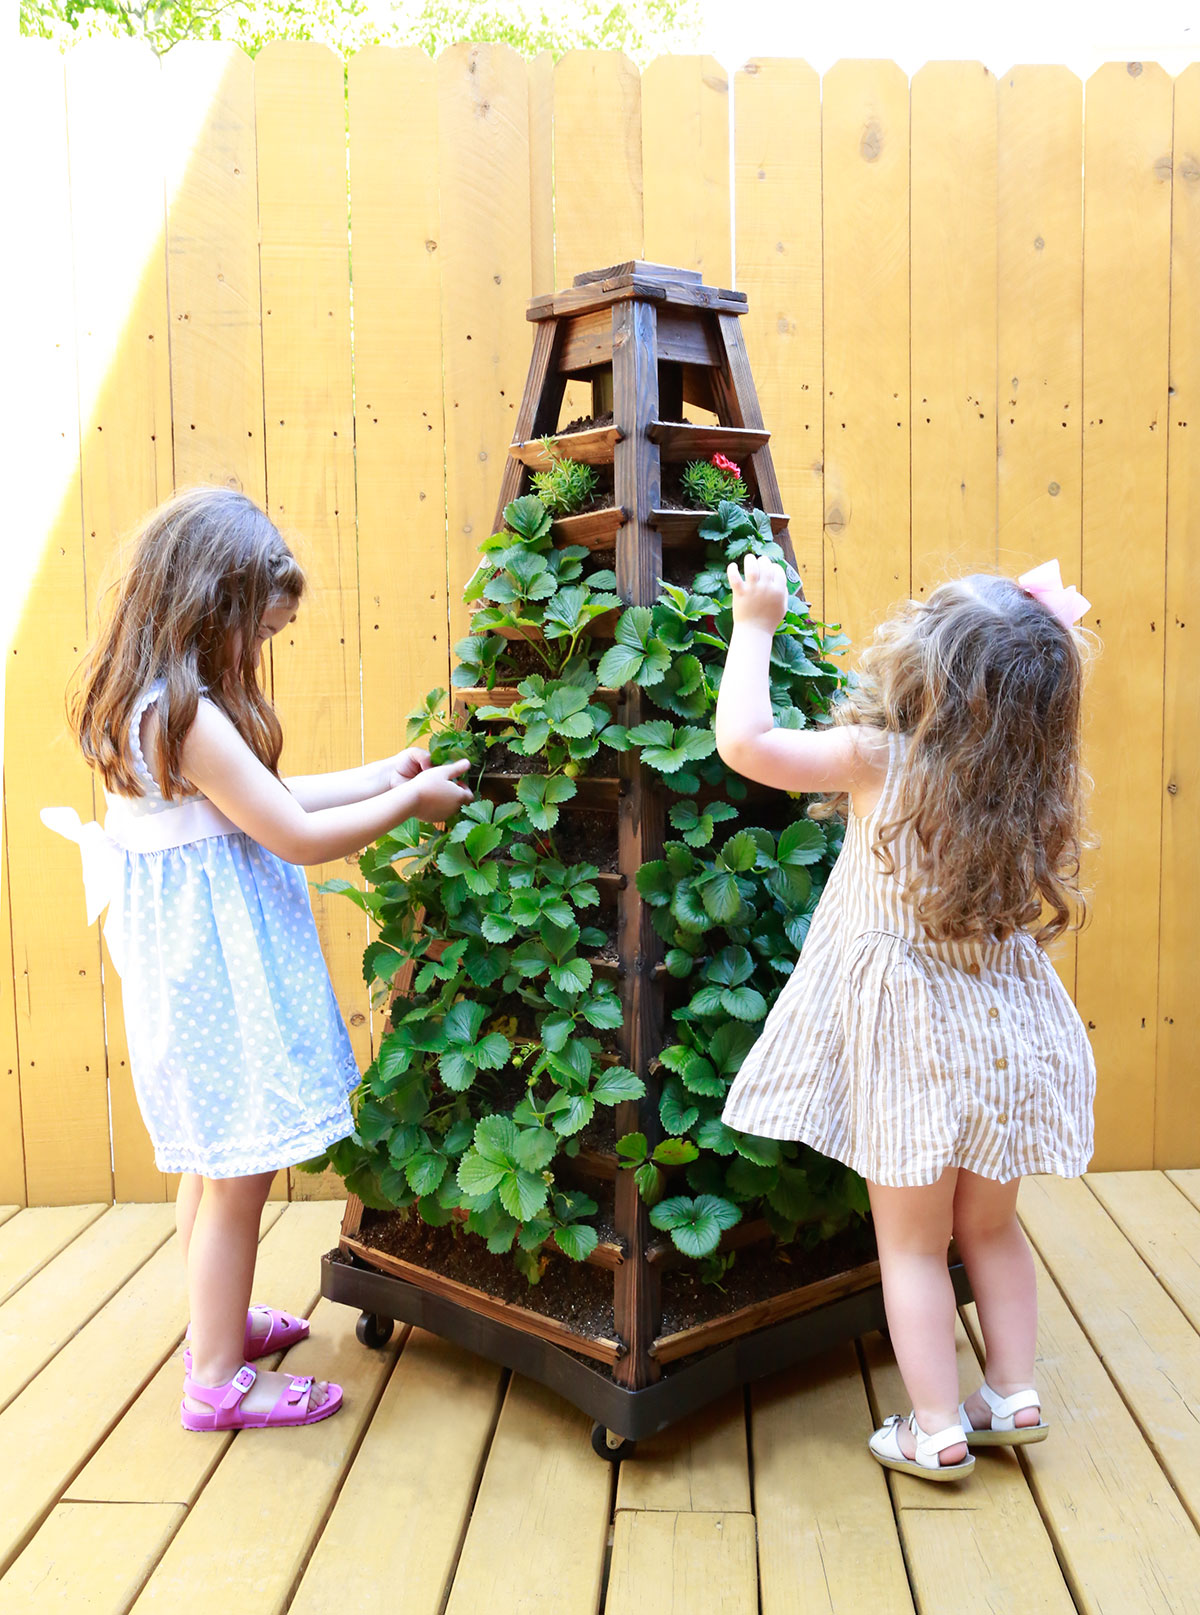 Kids Love Eye-Level Gardening